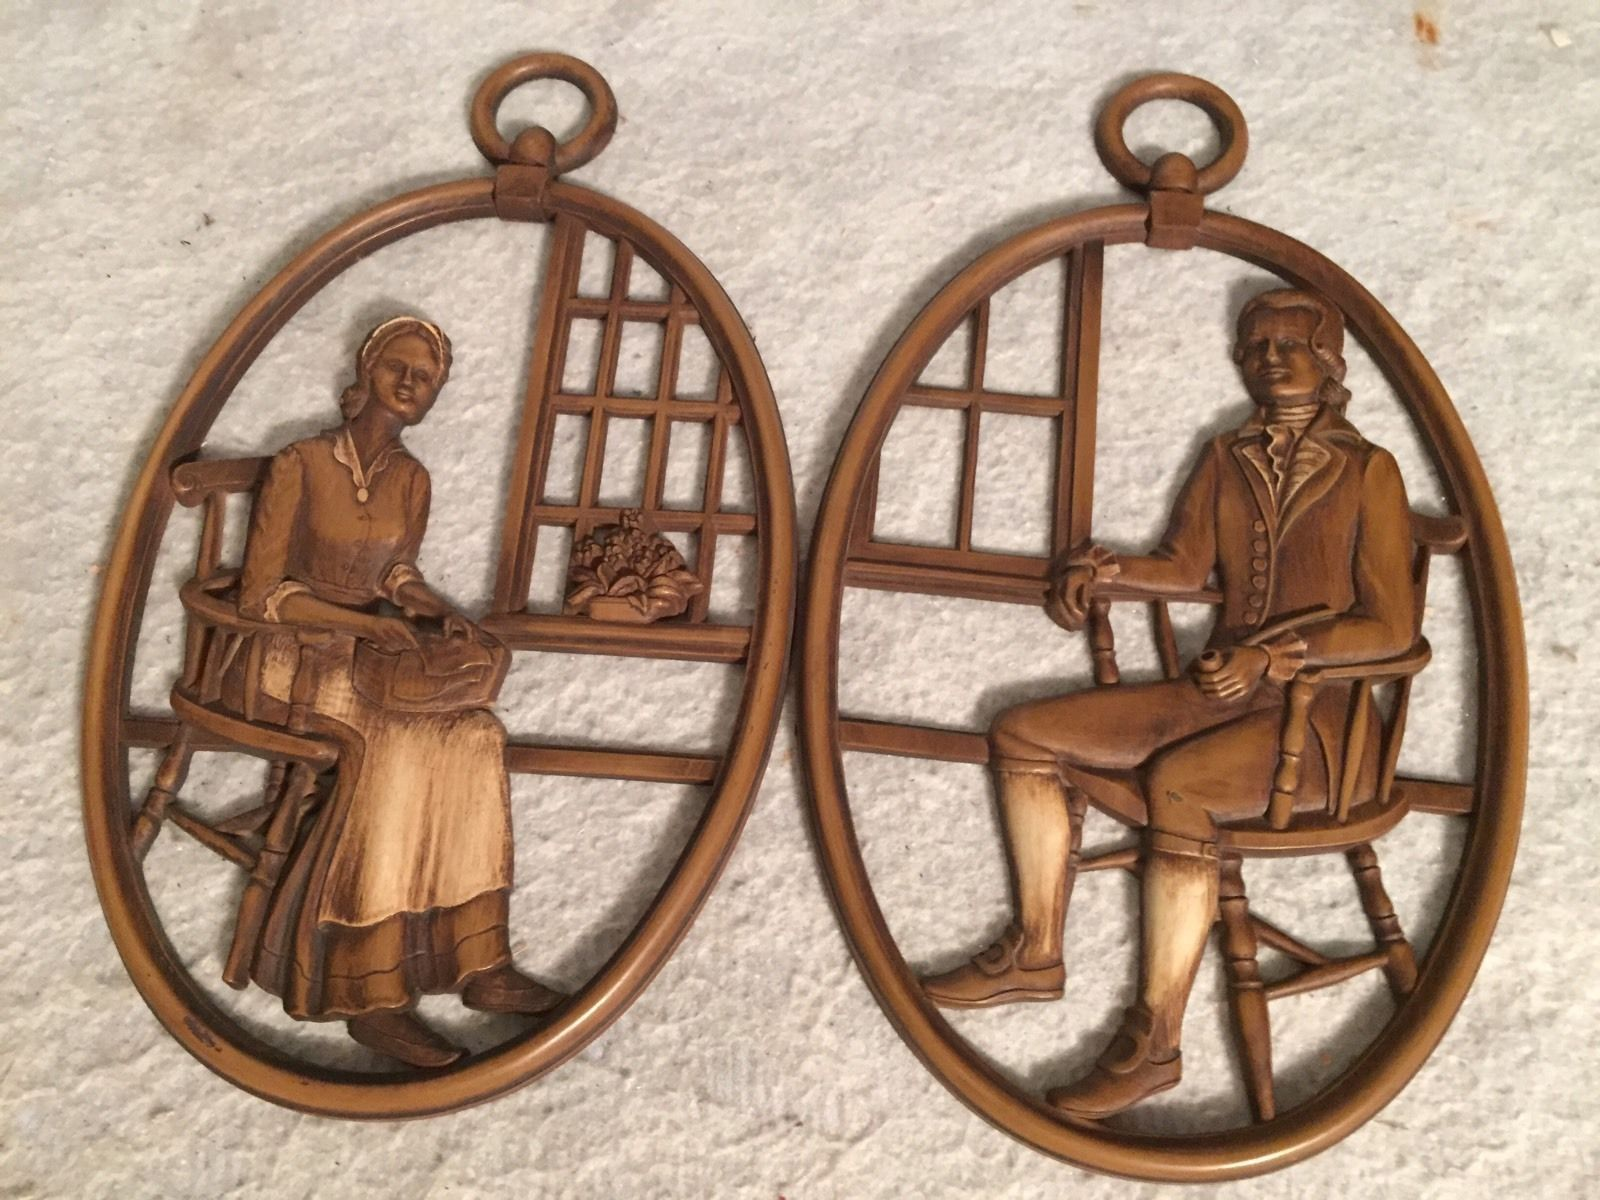 2 Vtg Syroco Wood Wall Hanging Plaques Man Woman Syracuse Ornamental Co USA.